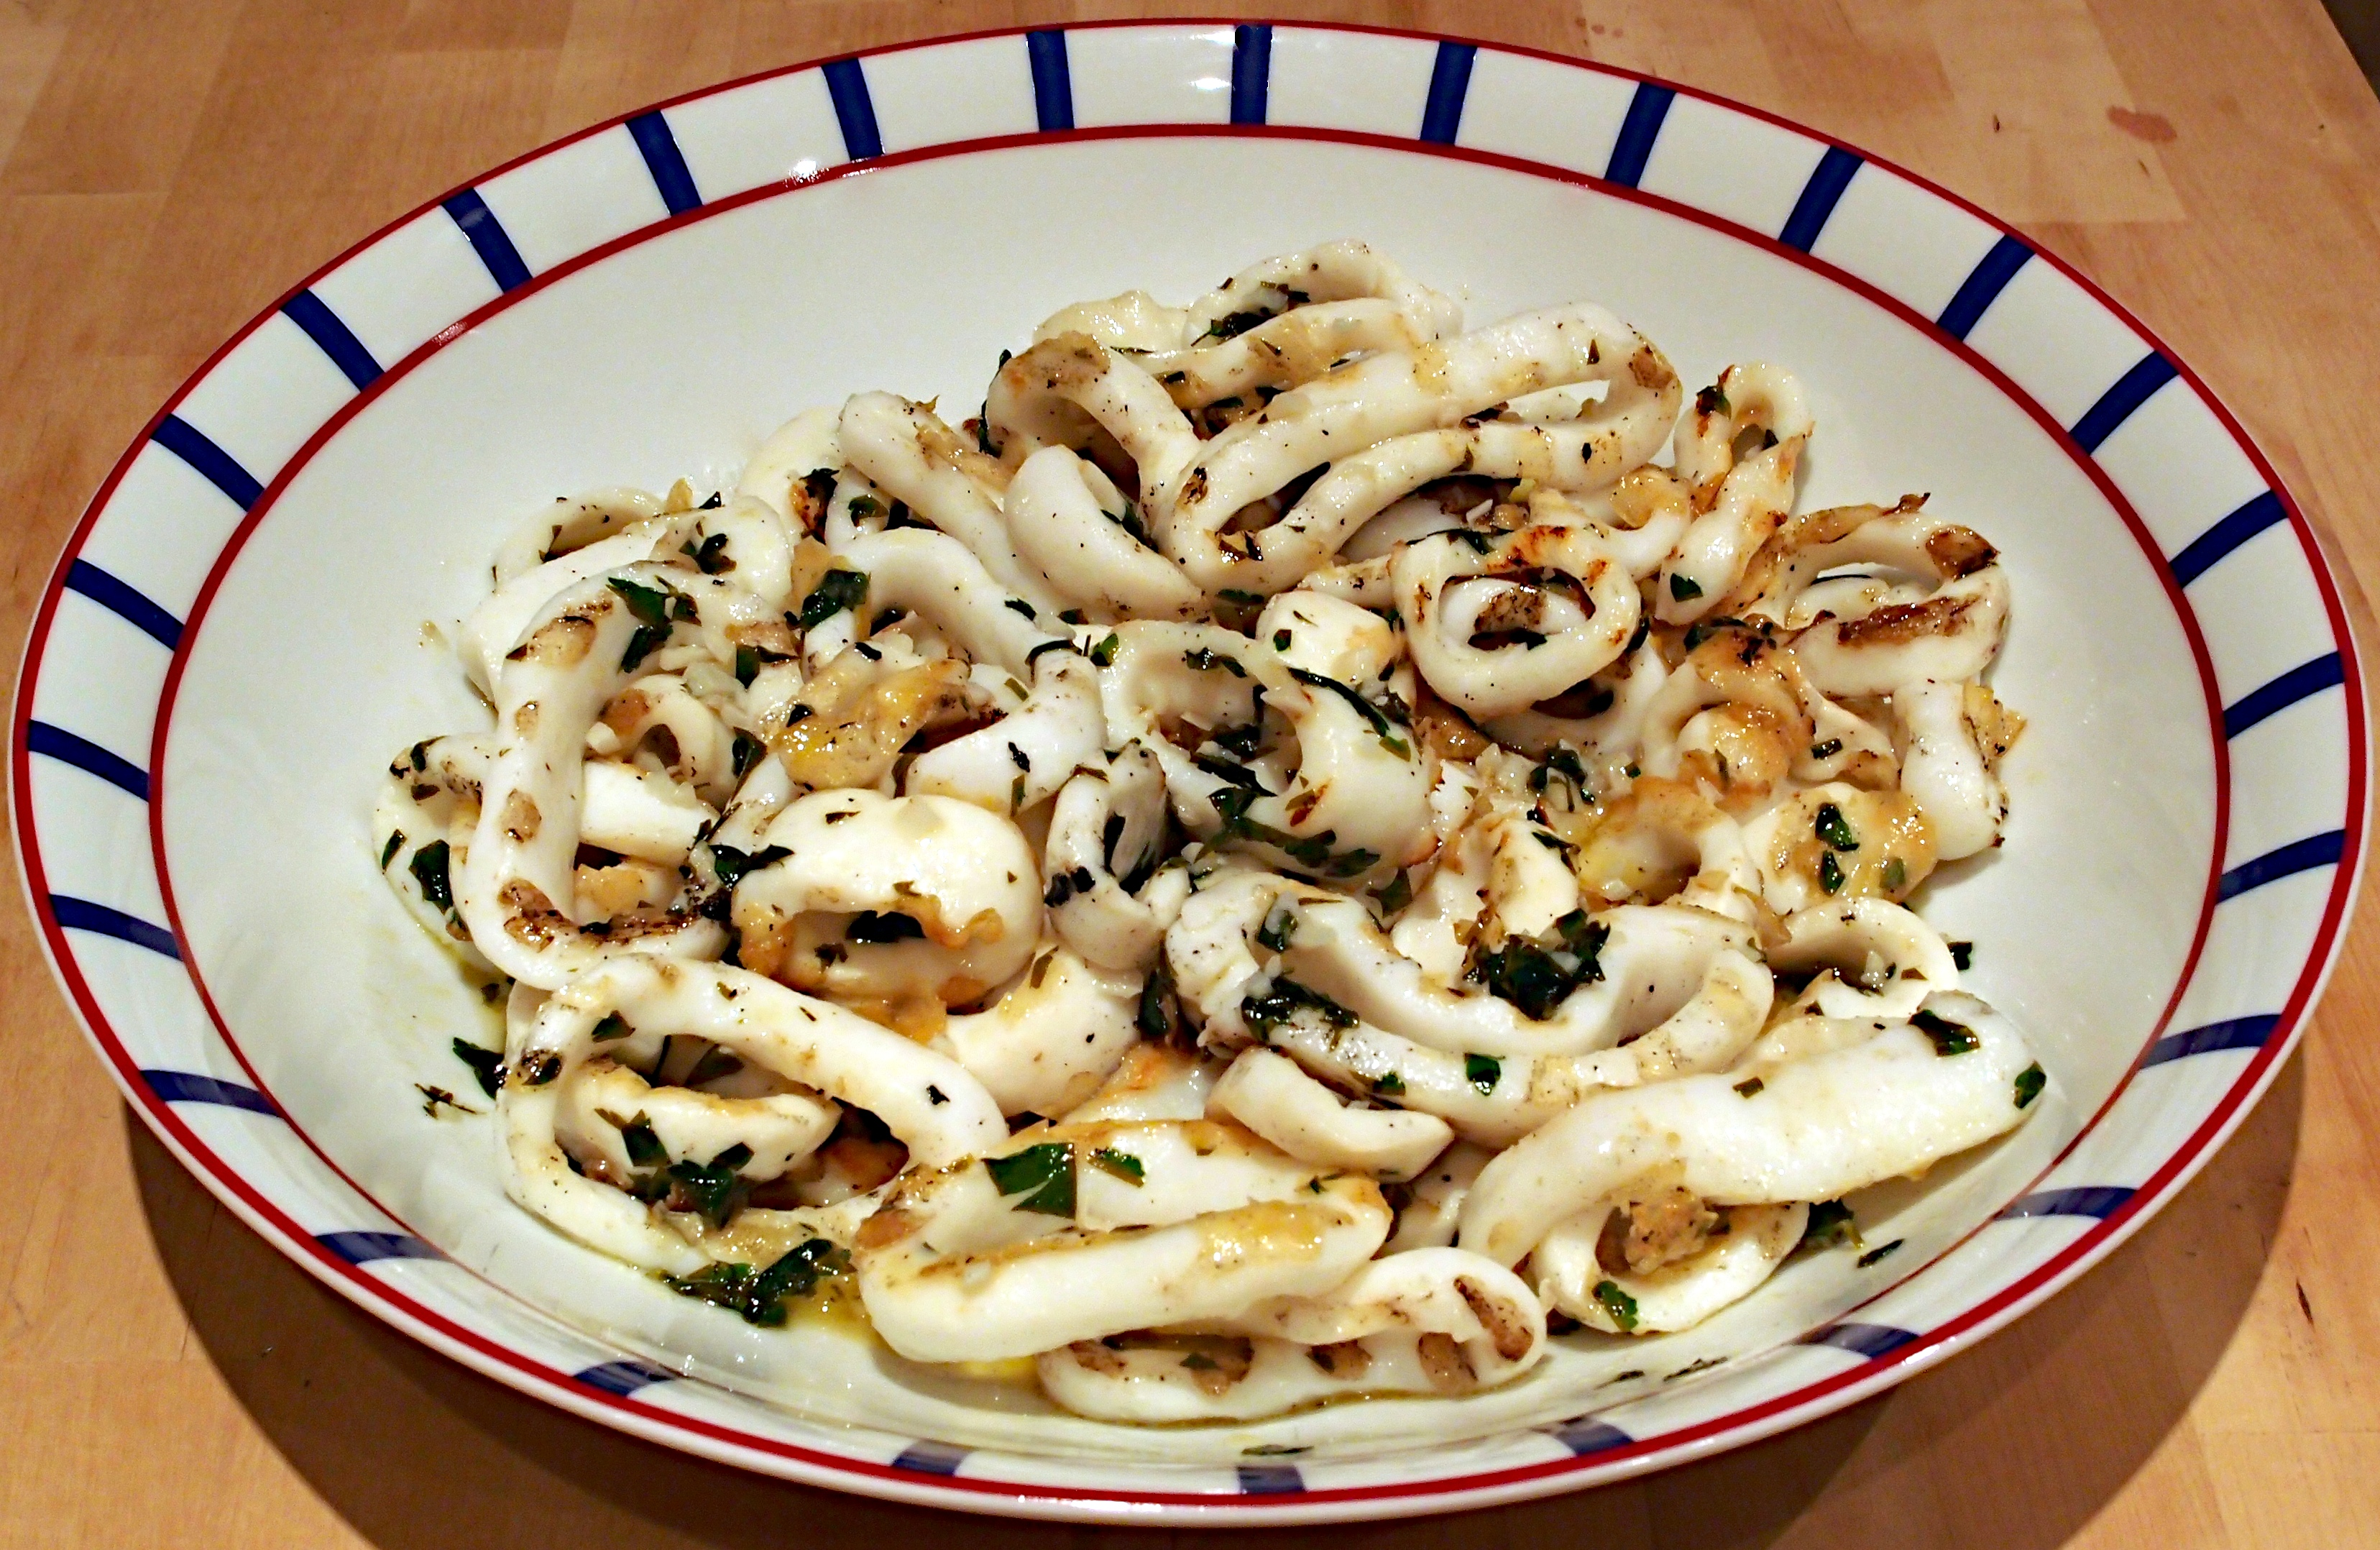 Sauteed Calamari With Parsley And Garlic